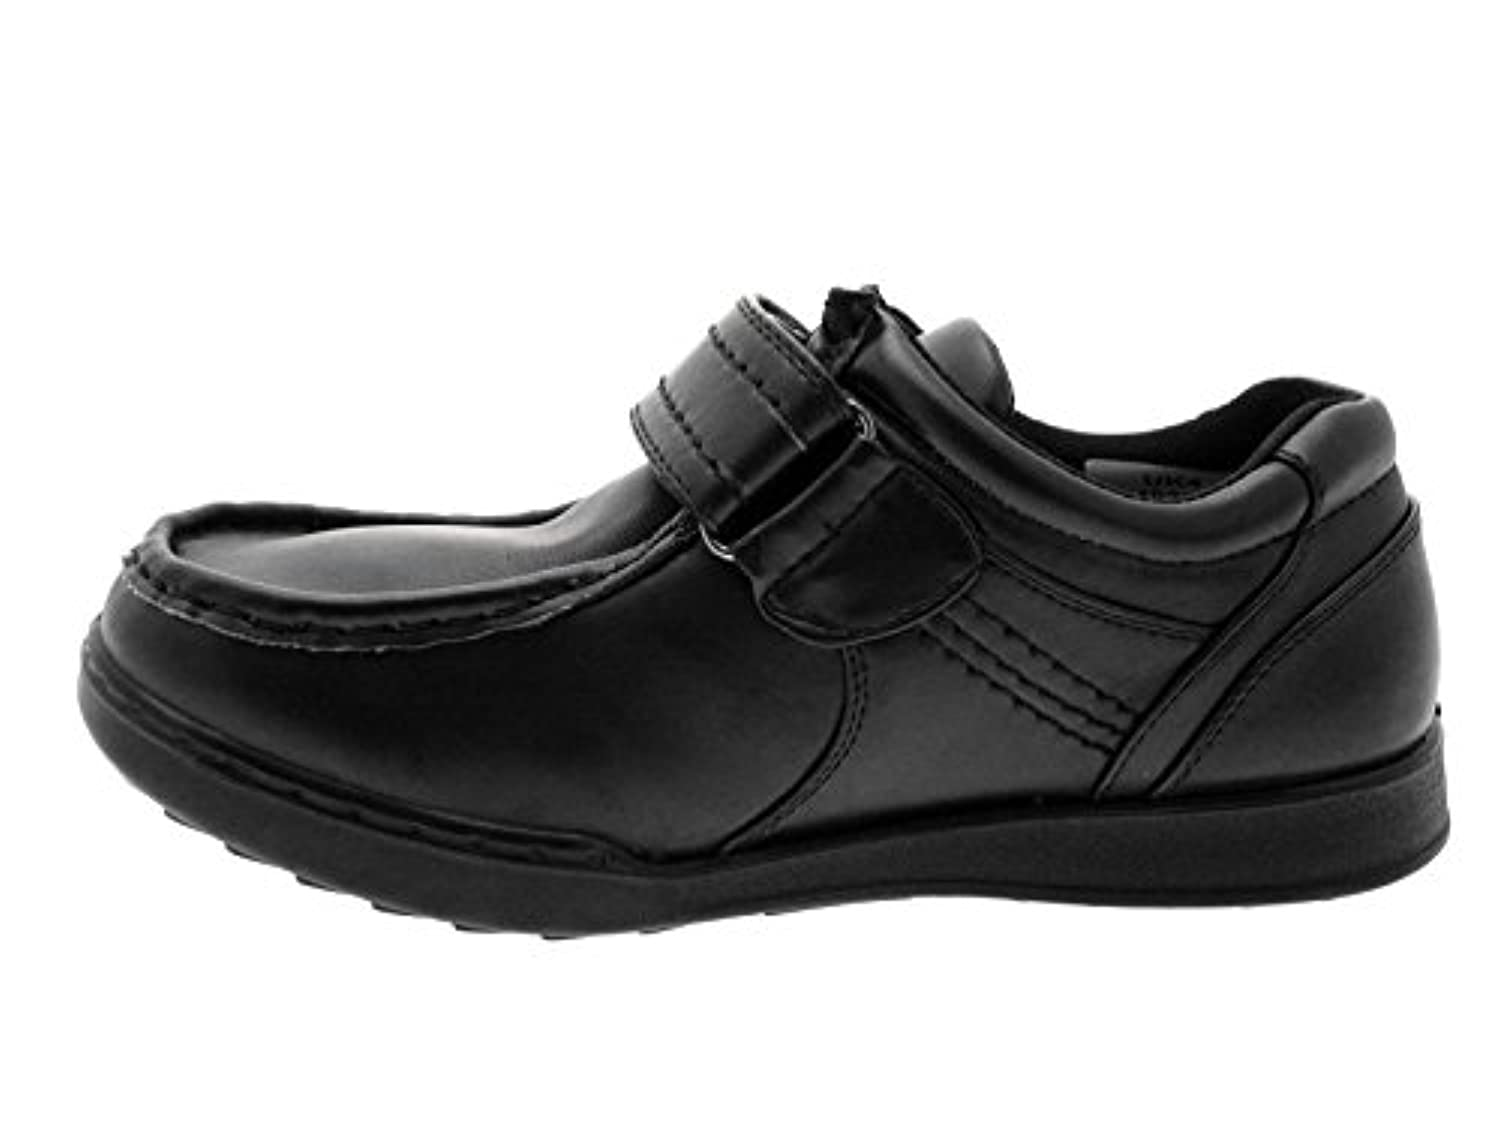 Lora Dora Boys Kids Black Velcro School Shoes Size UK 8